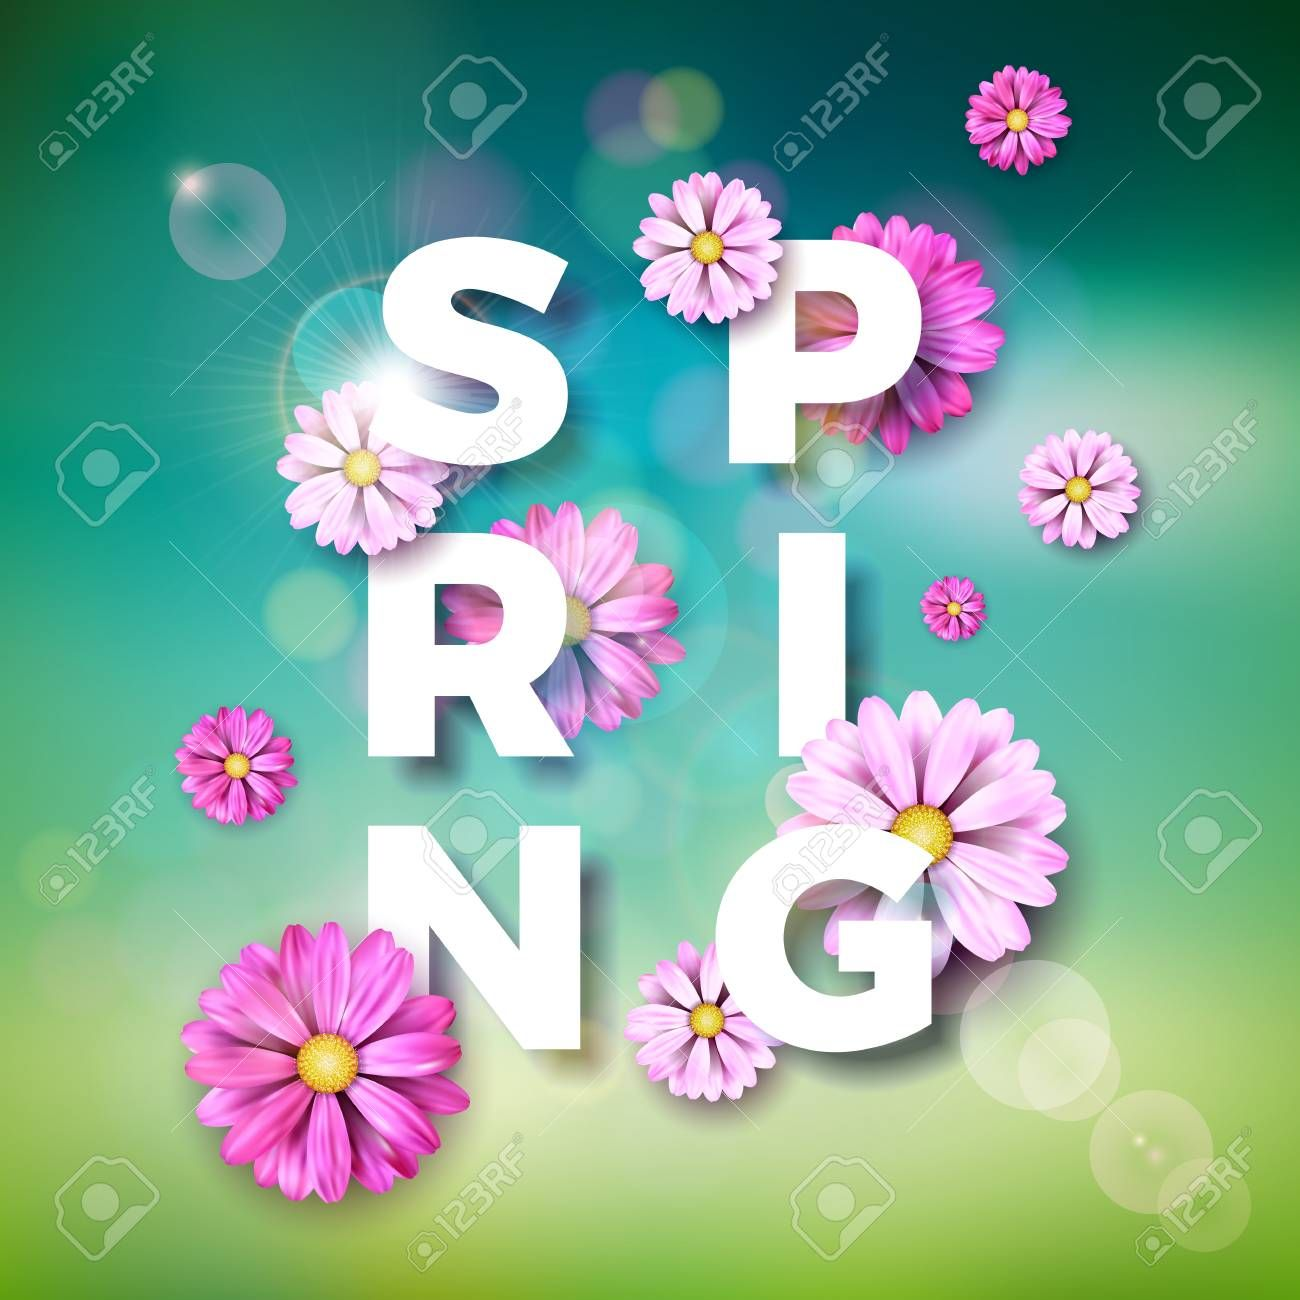 Vector Illustration on a spring nature theme with beautiful colorful flower on blurred landscape background. , #spon, #nature, #theme, #spring, #Vector, #Illustration